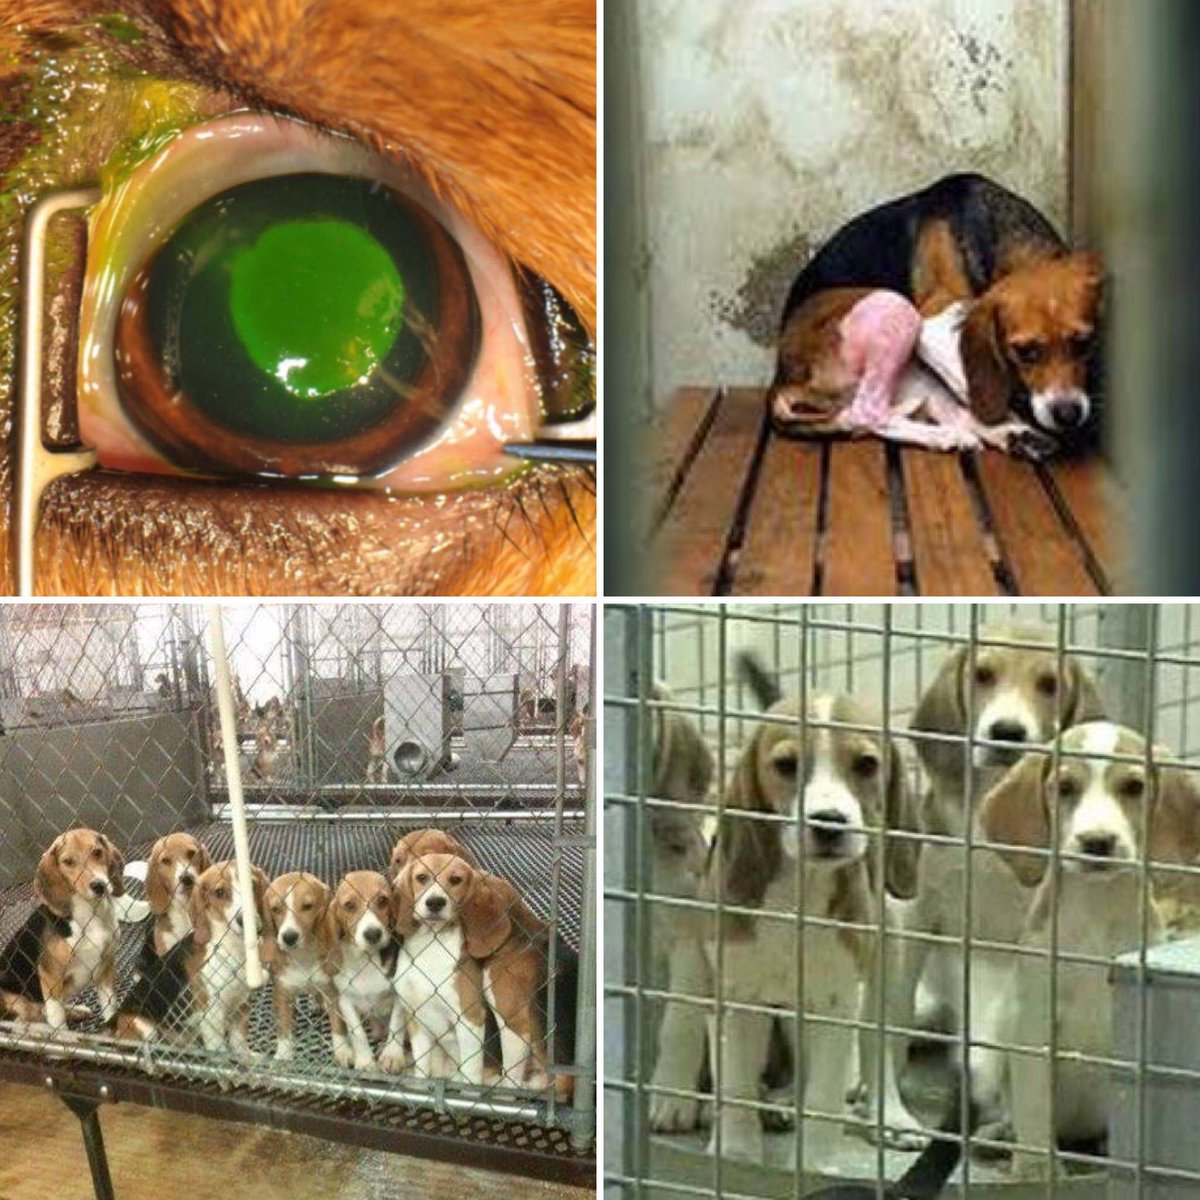 SIGN PETITION: https://t.co/RvZPQO0Pow @Mizzou purposely damaged 6 beagles' corneas and then killed them! https://t.co/nWuOFW6YYT